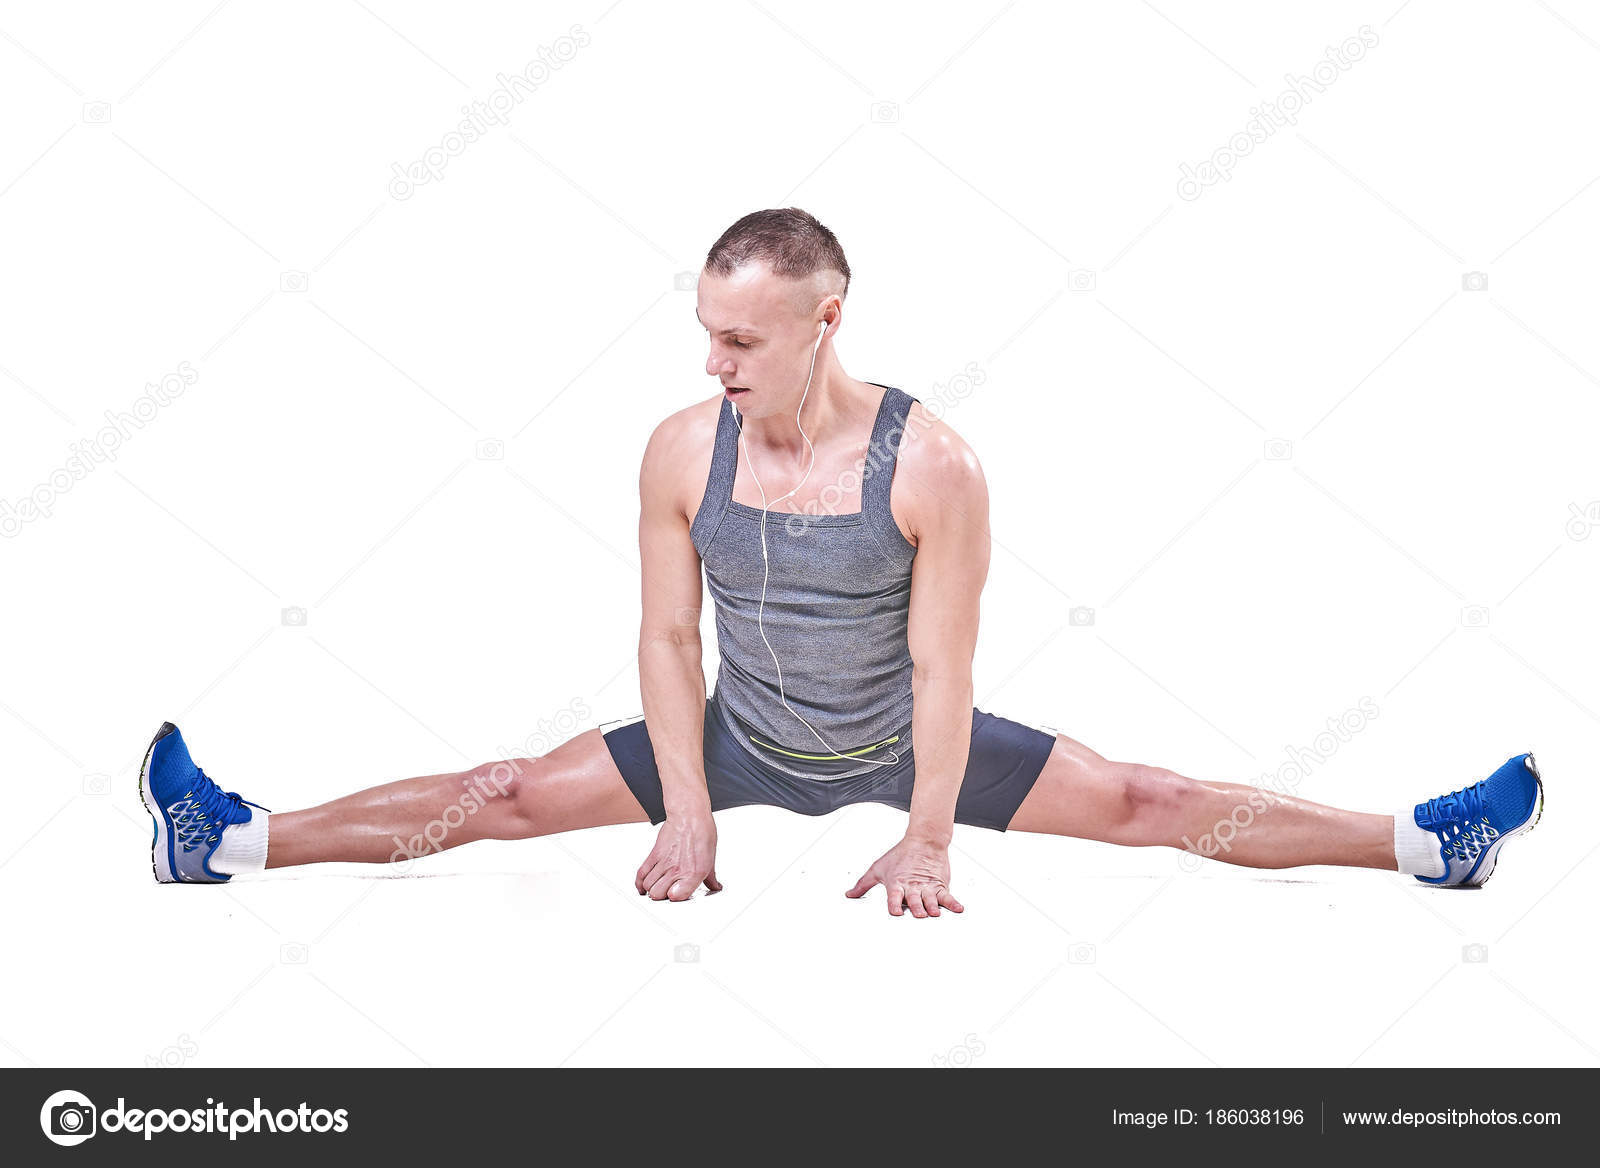 Beautiful man performs side splits in sportswear isolated on a white